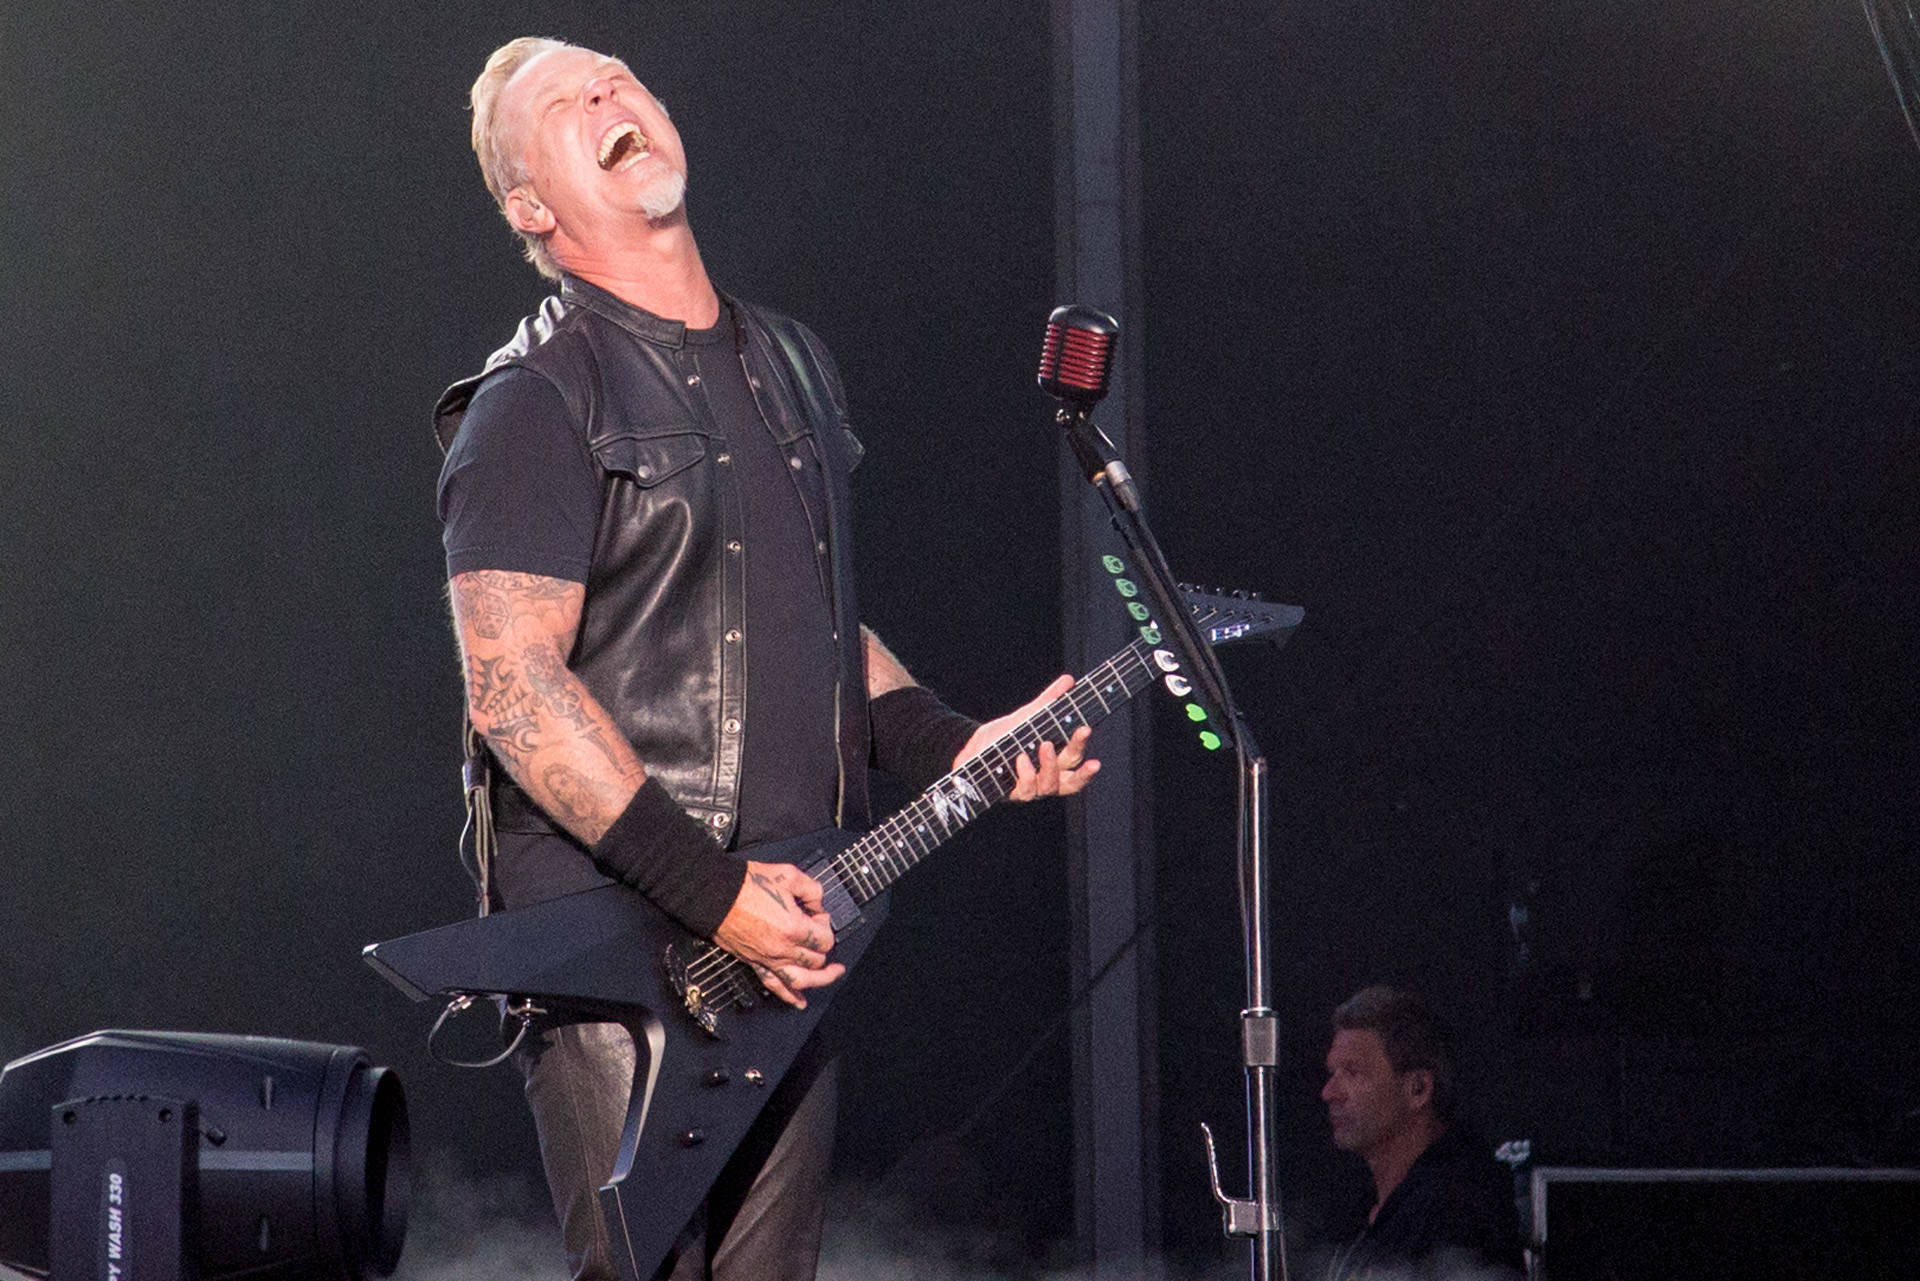 Metallica performs at the Outside Lands music festival in San Francisco, Aug. 12, 2017. Estefany Gonzalez